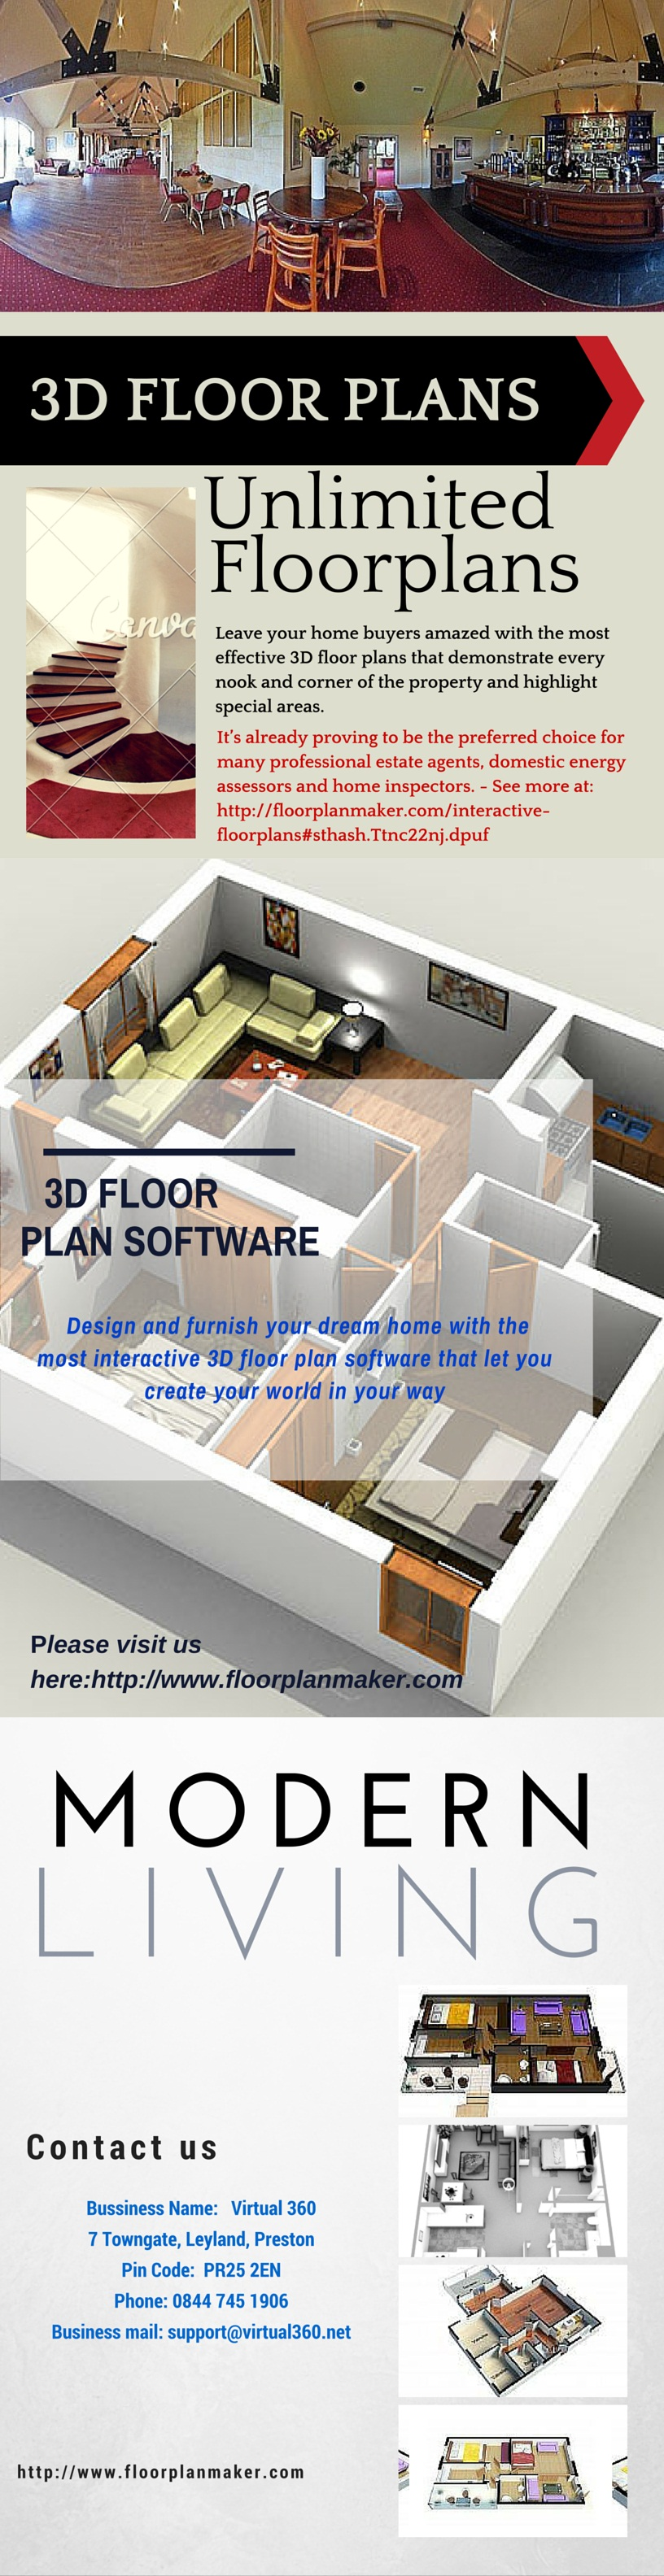 Leave your home buyers amazed with the most effective 3D floor plans ...